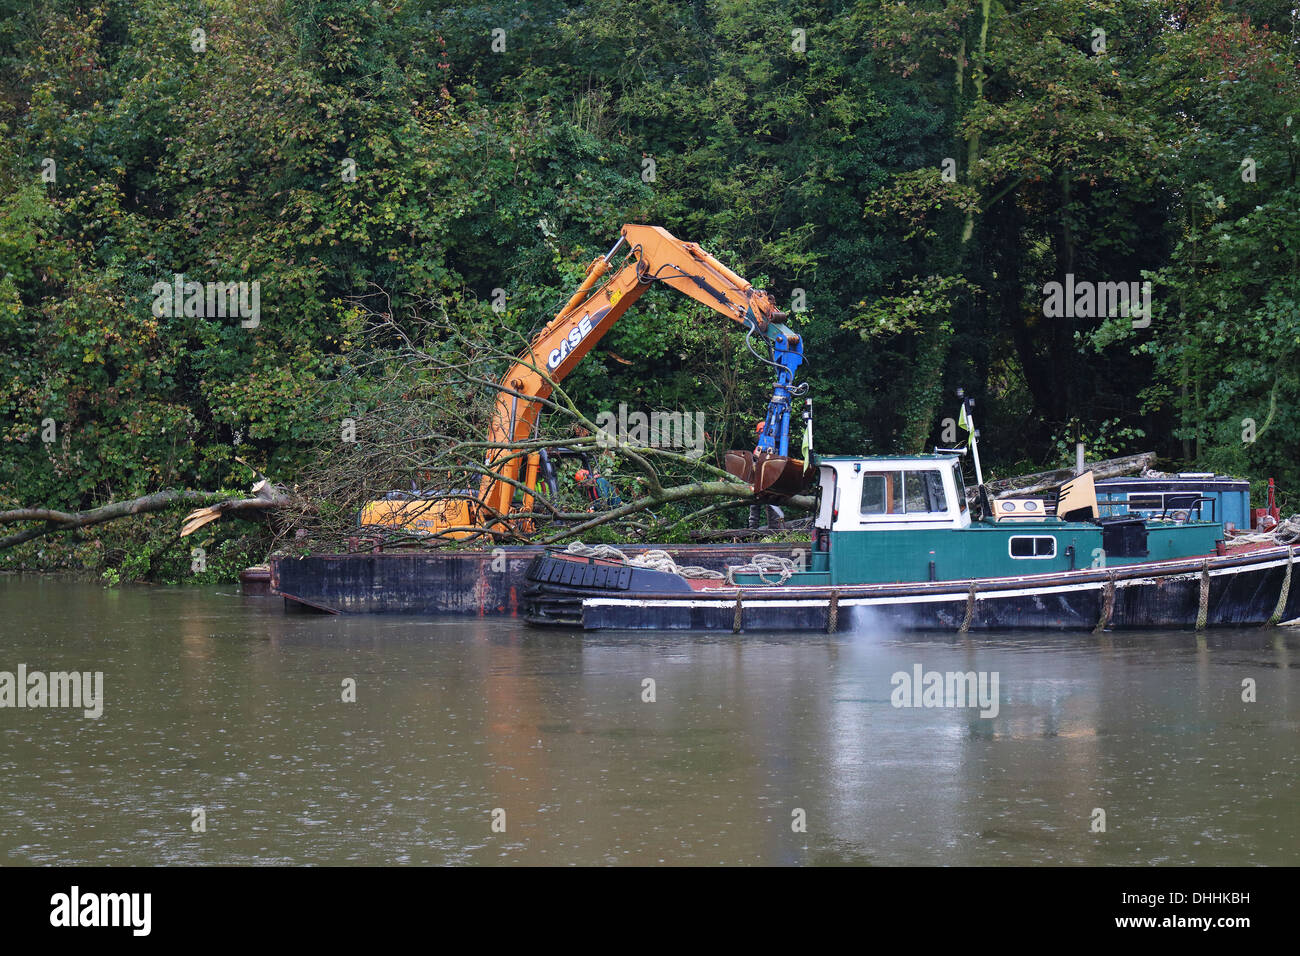 Maintenance work on the River Thames, removing fallen trees after storm damage - Stock Image